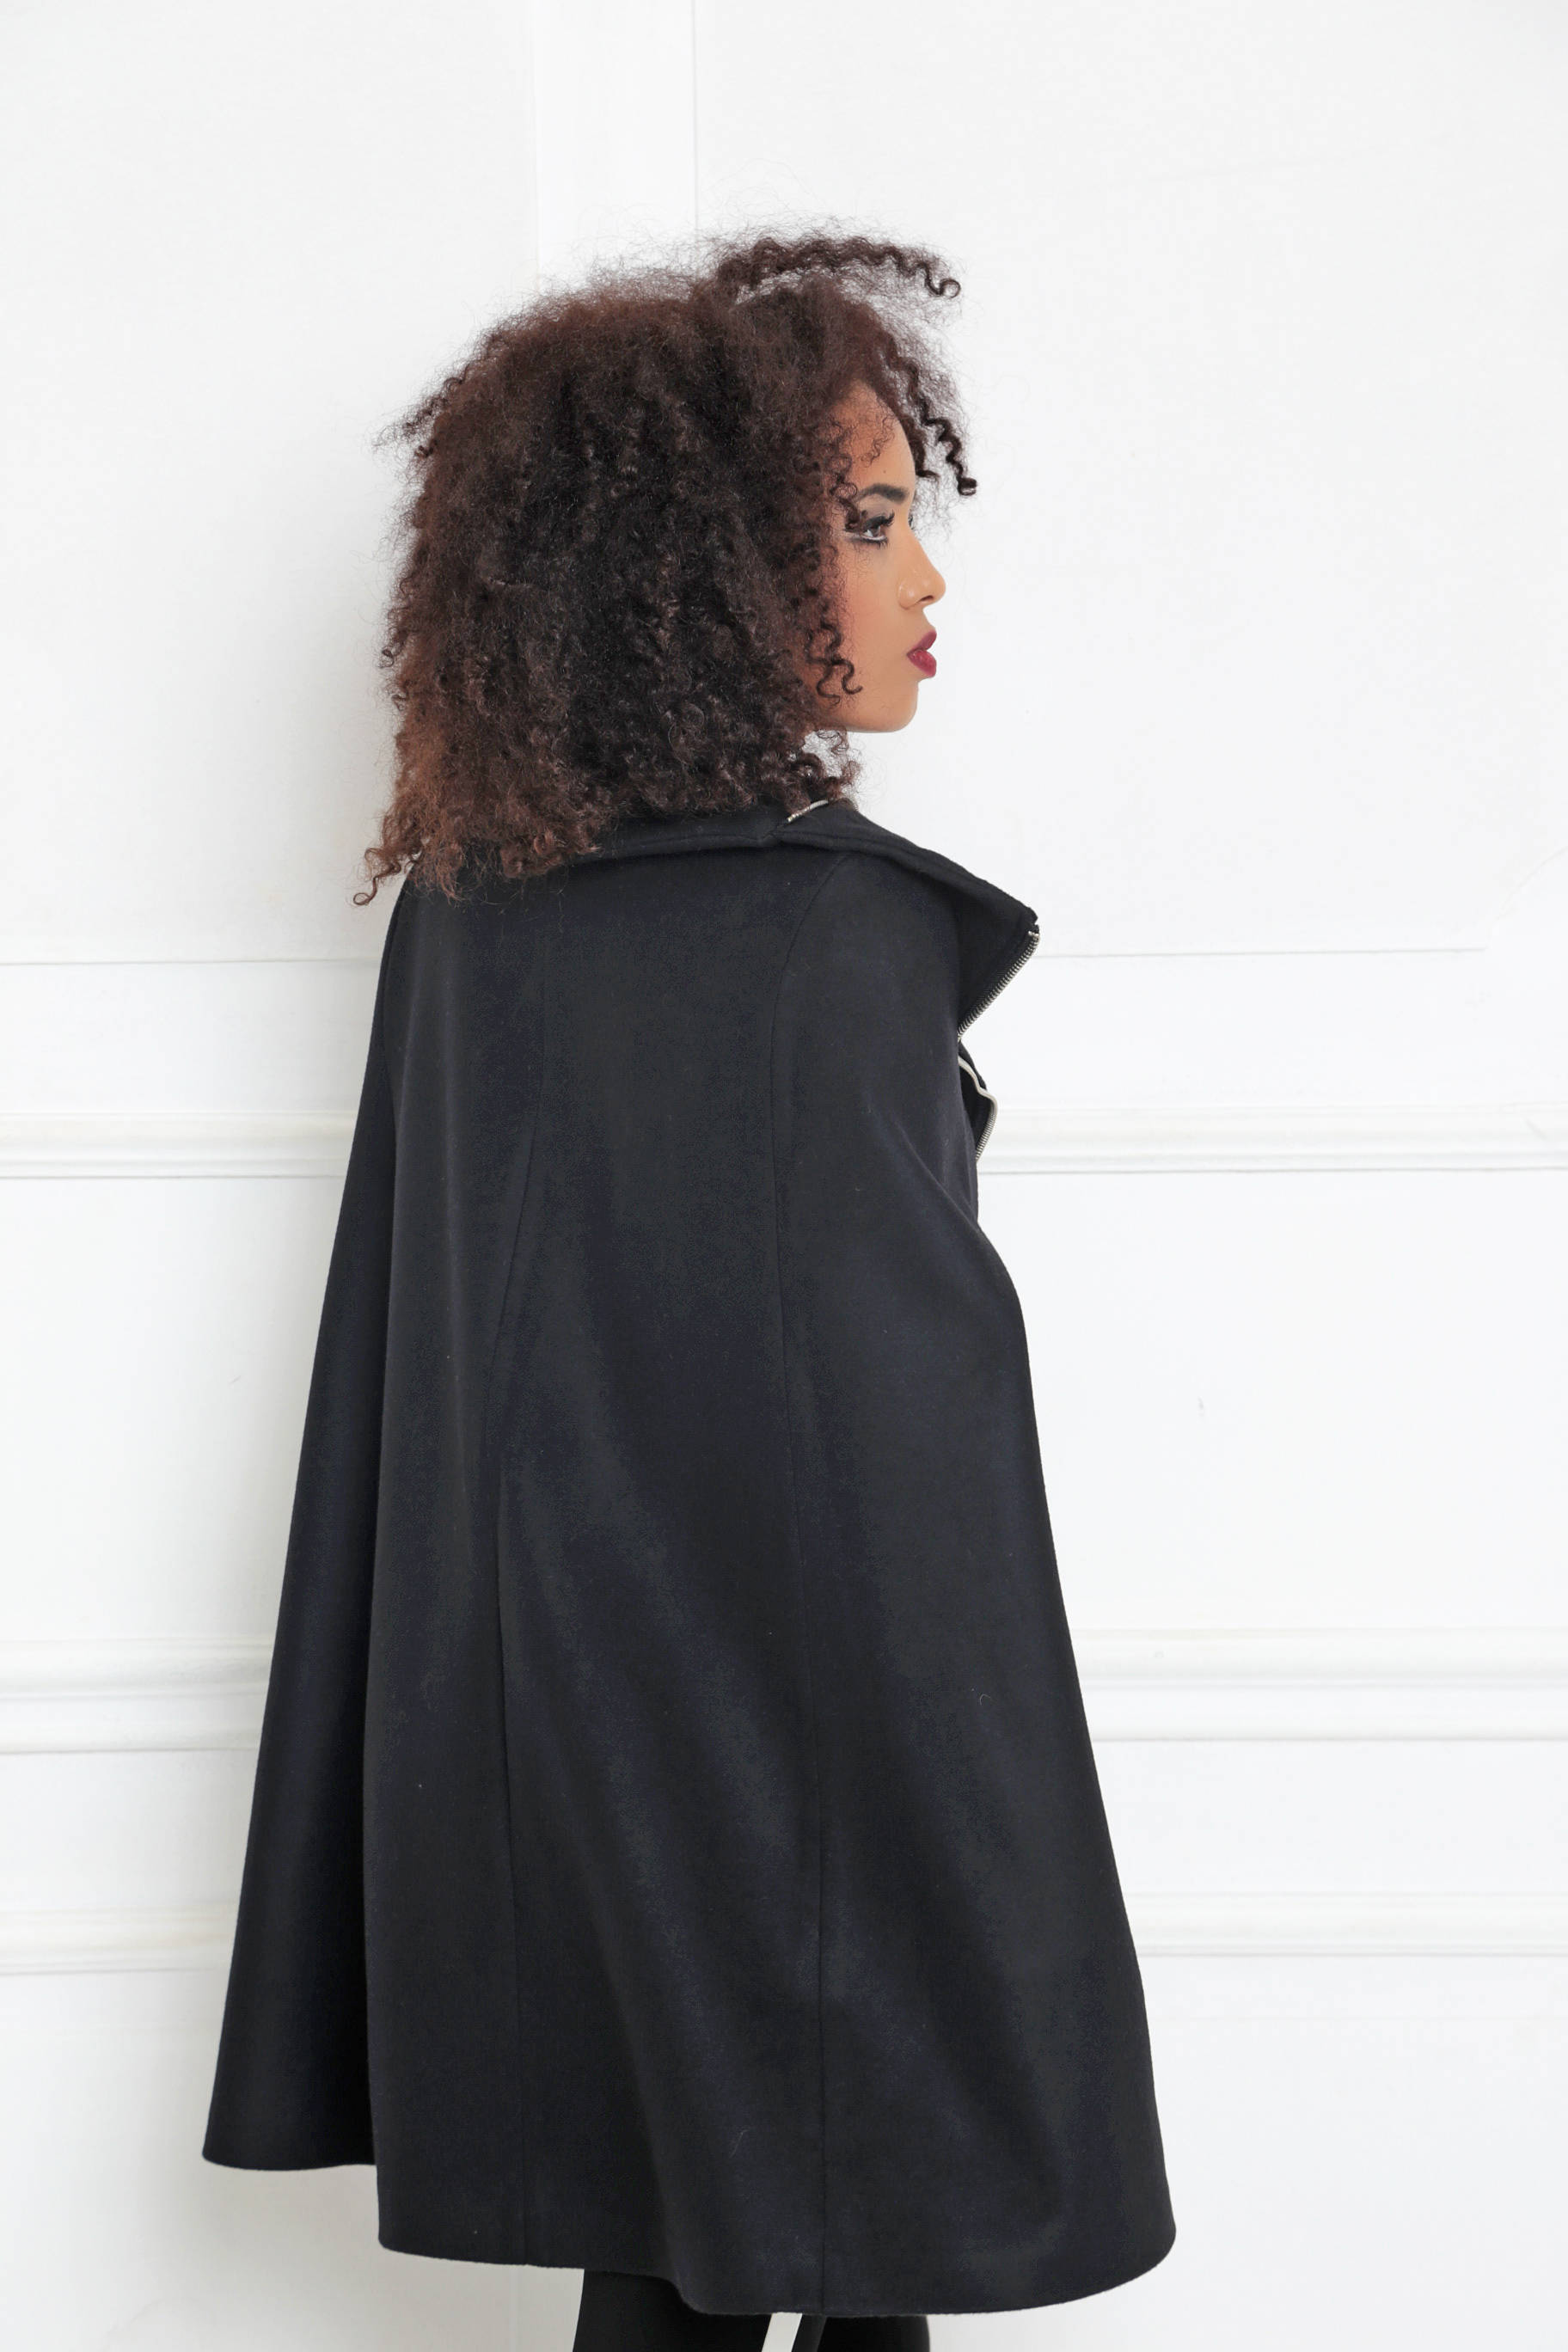 d4a80efb43c Womens Cape Coat  Black Poncho Cape  Plus Size Goth Coat  Winter Cape Coat